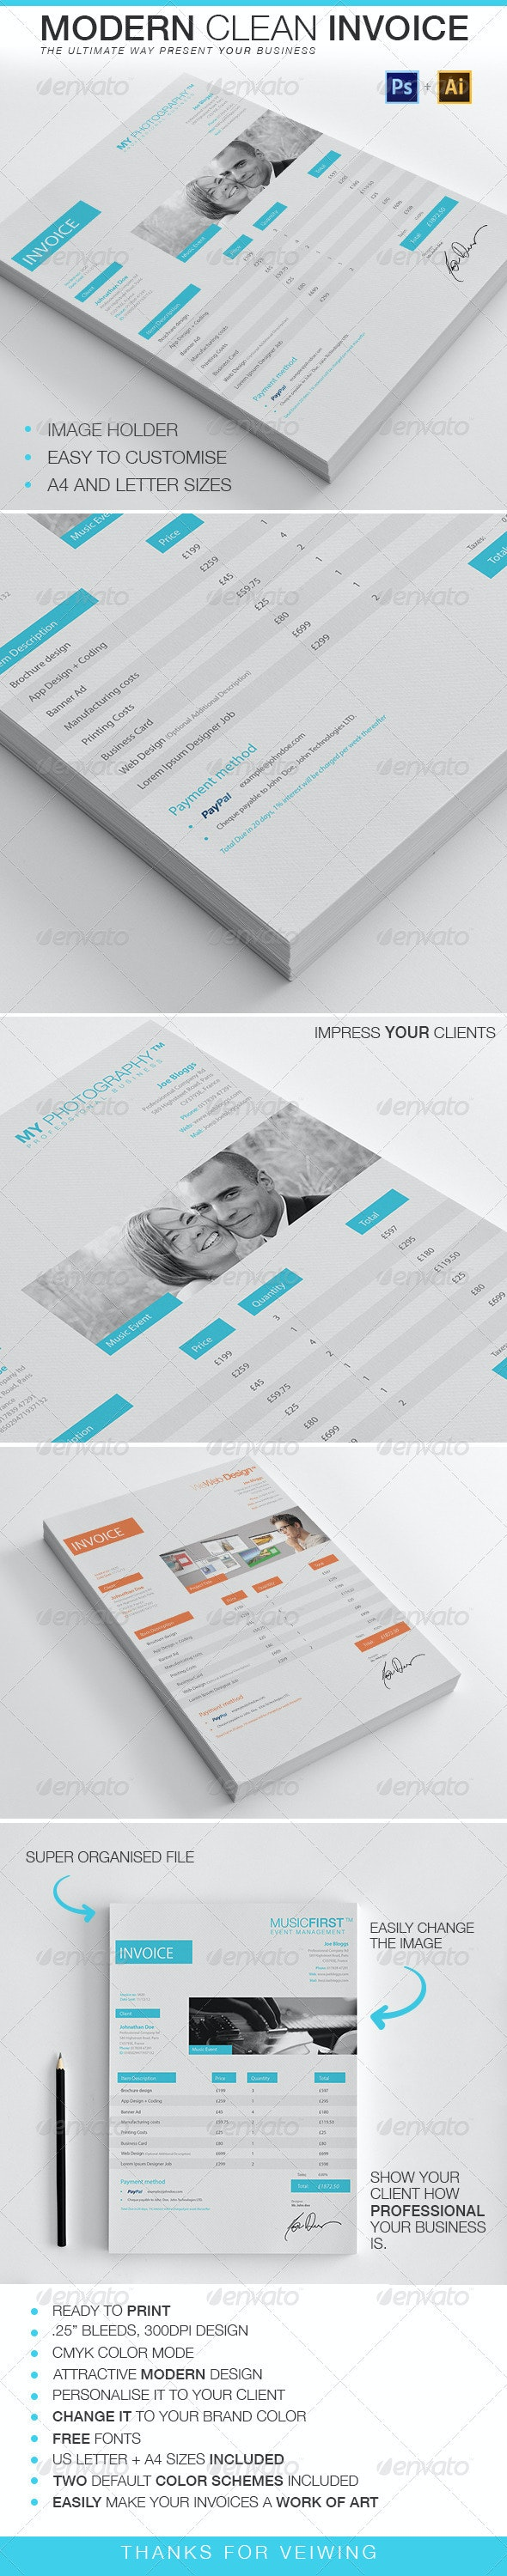 Modern Clean Invoice - Proposals & Invoices Stationery